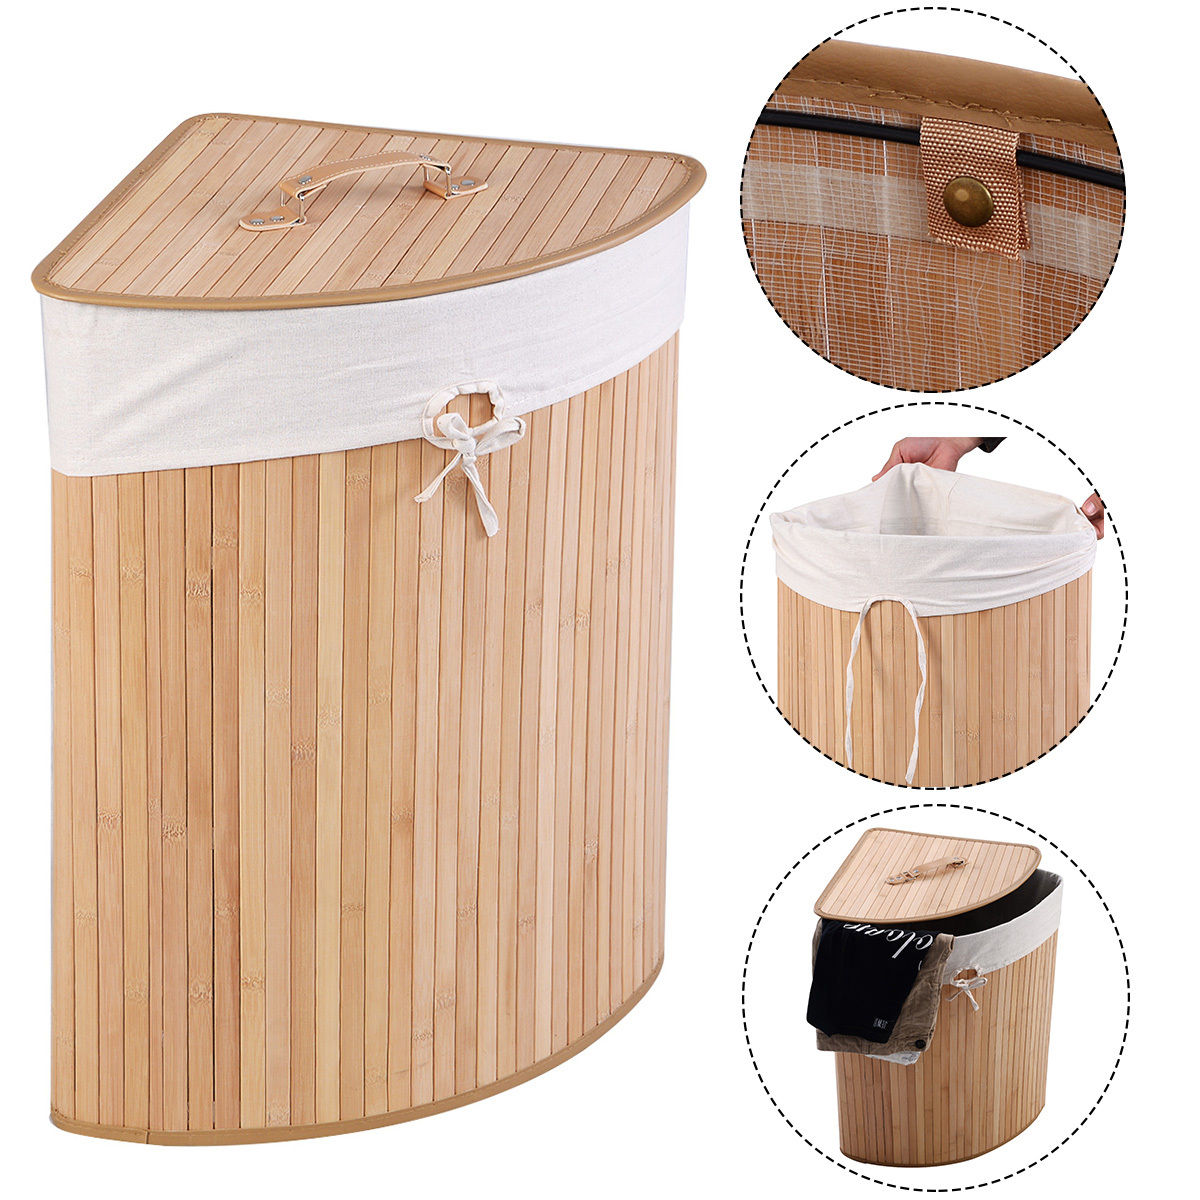 Costway Corner Bamboo Hamper Laundry Basket Washing Cloth Bin Storage Bag Lid Natural